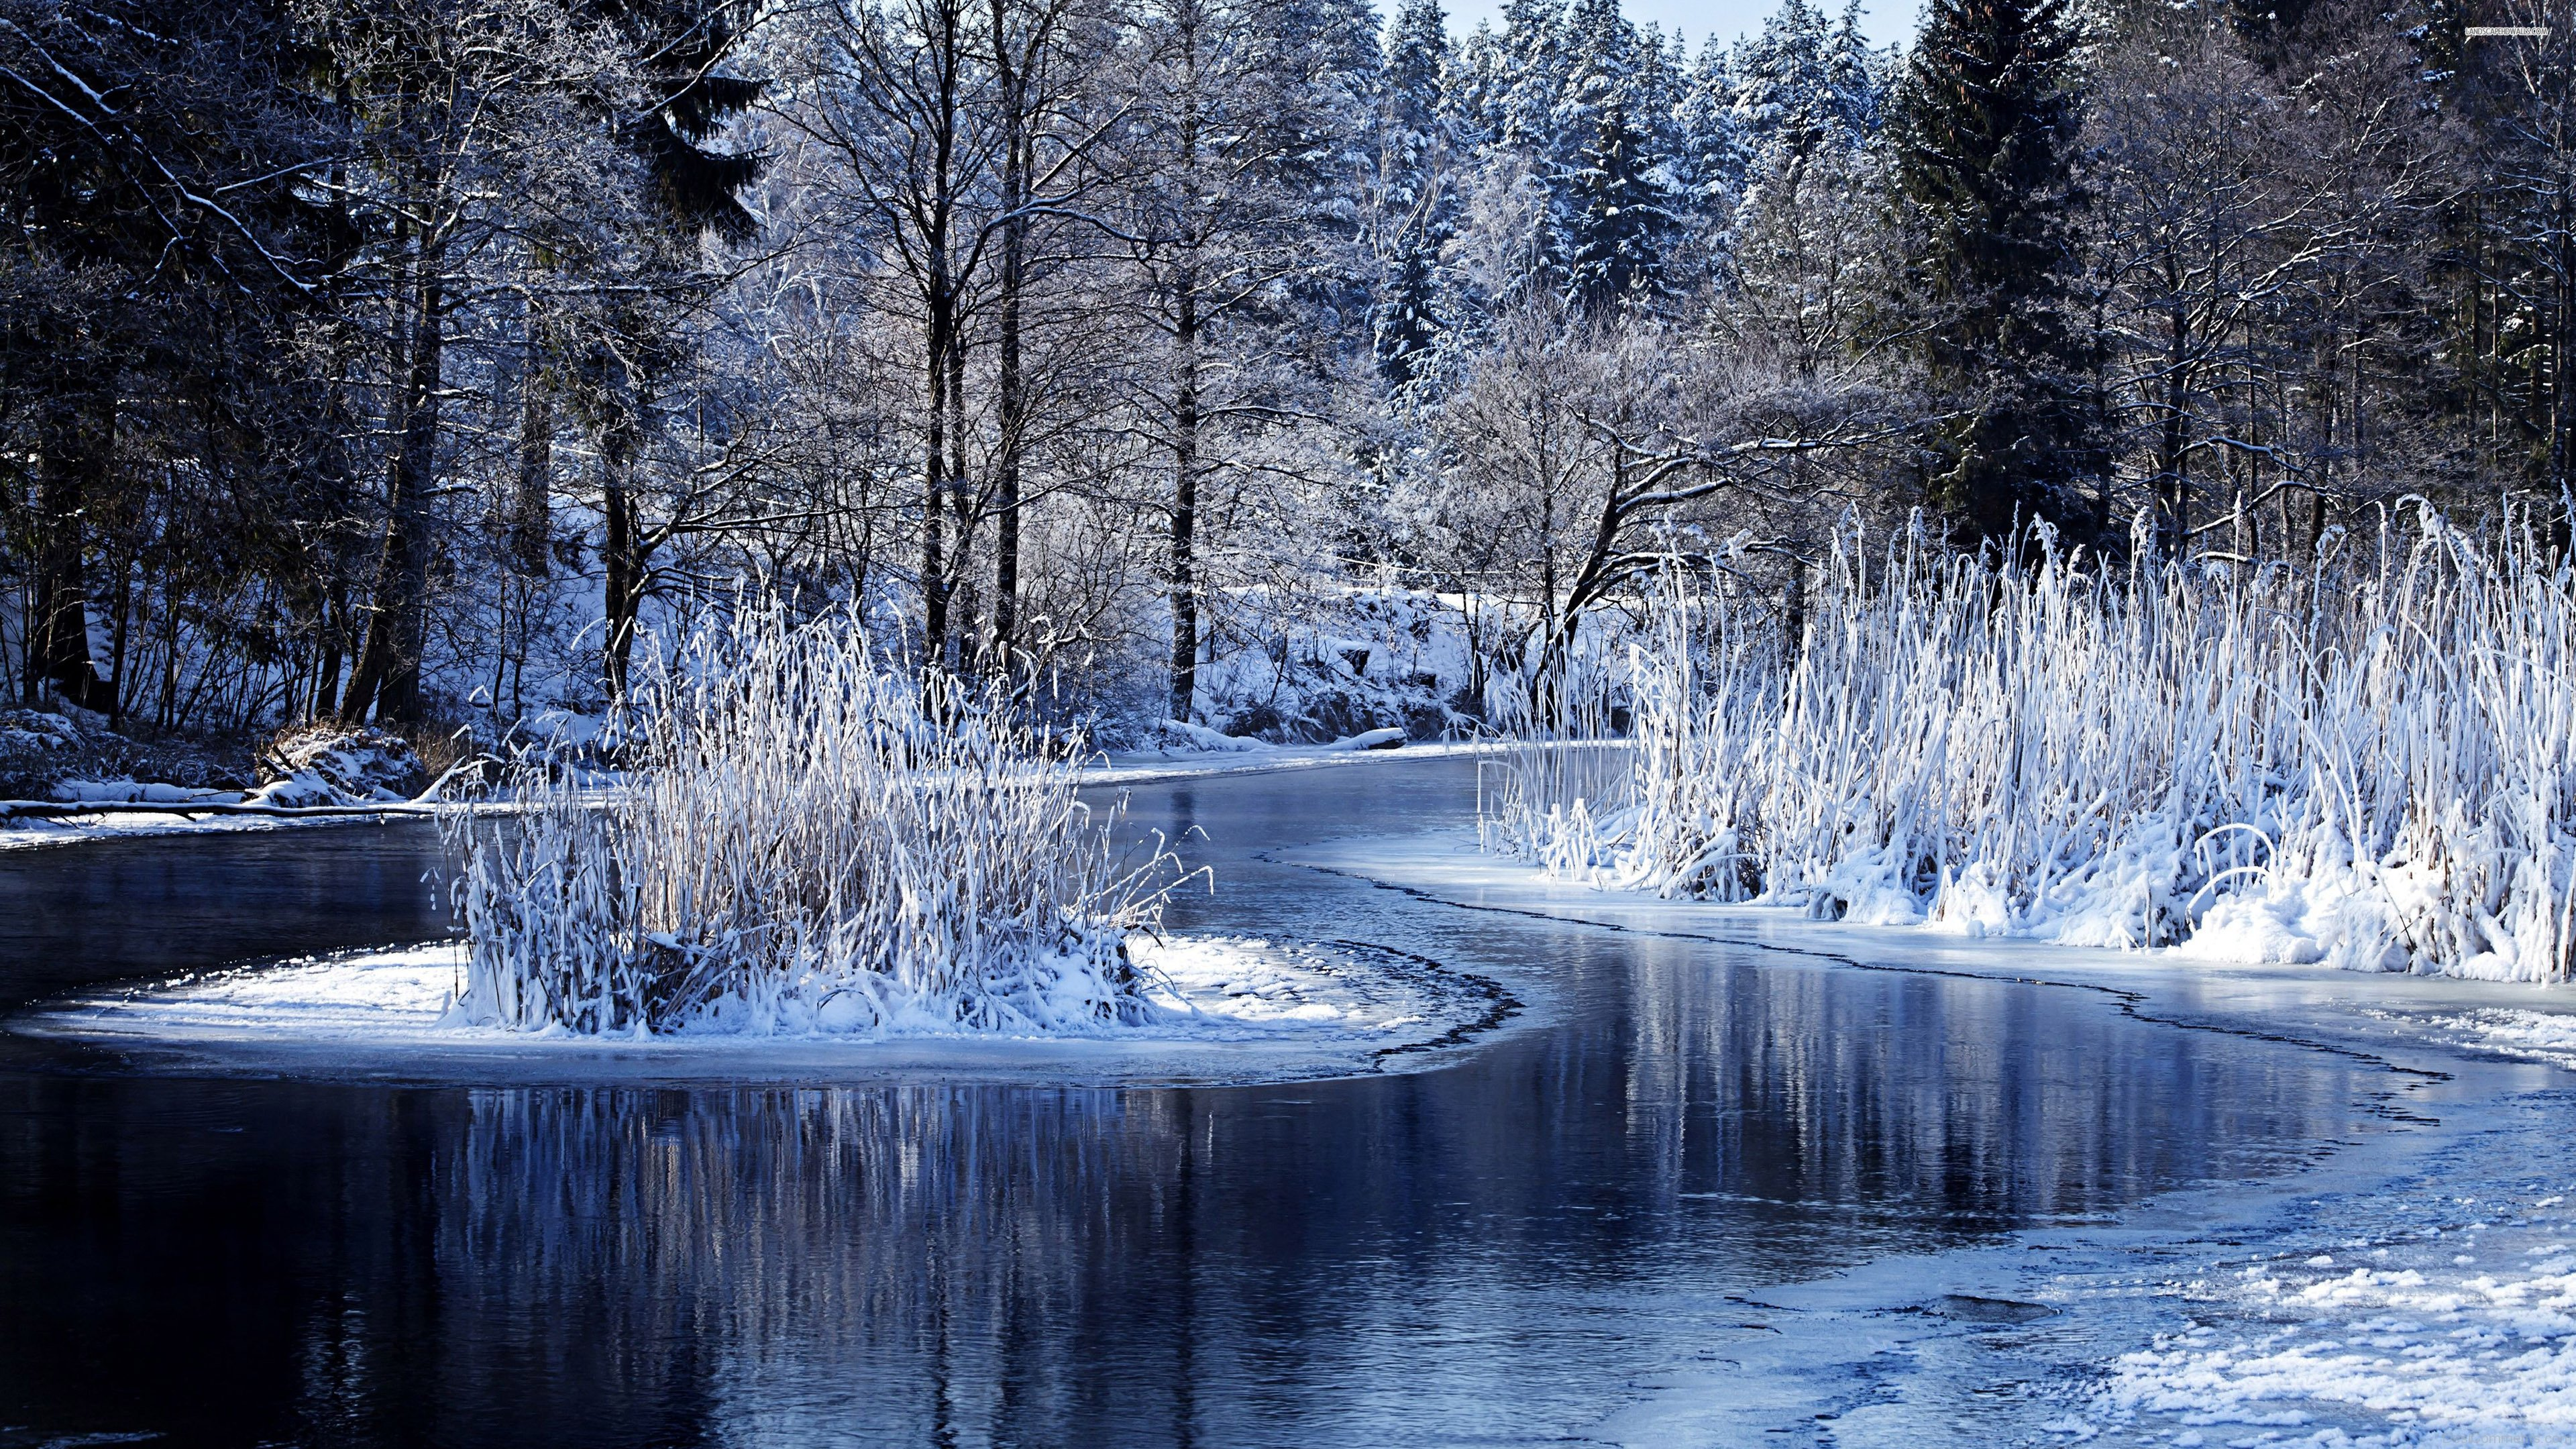 4k Nature Wallpaper Winter France: Winter Pictures, Images, Graphics